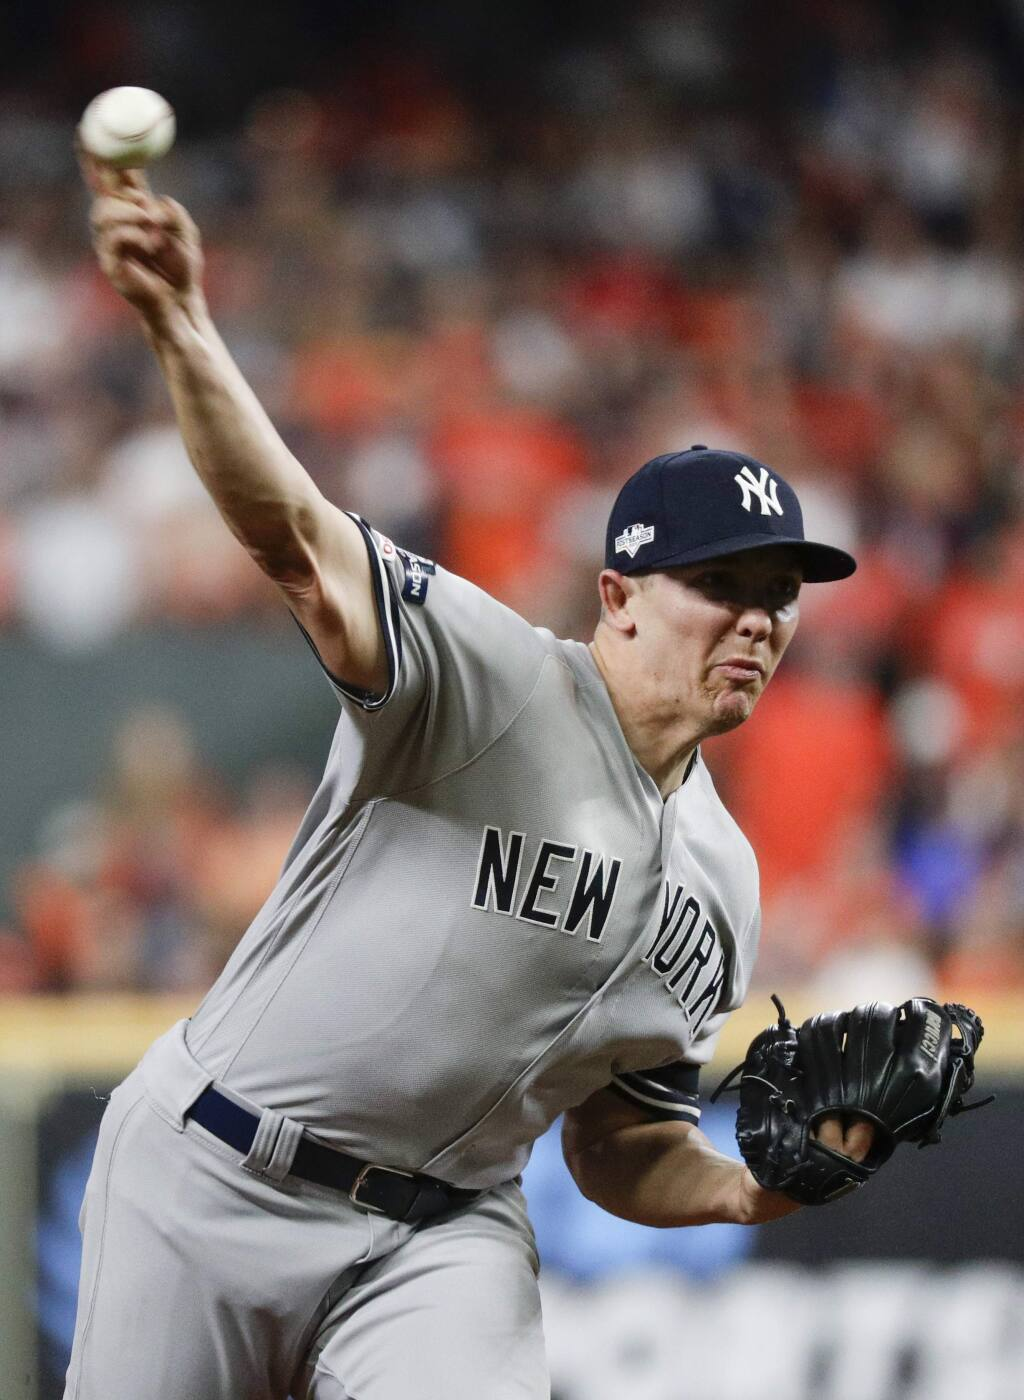 New York Yankees starting pitcher Chad Green throws against the Houston Astros during the first inning in Game 6 of baseball's American League Championship Series Saturday, Oct. 19, 2019, in Houston. (AP Photo/Eric Gay)